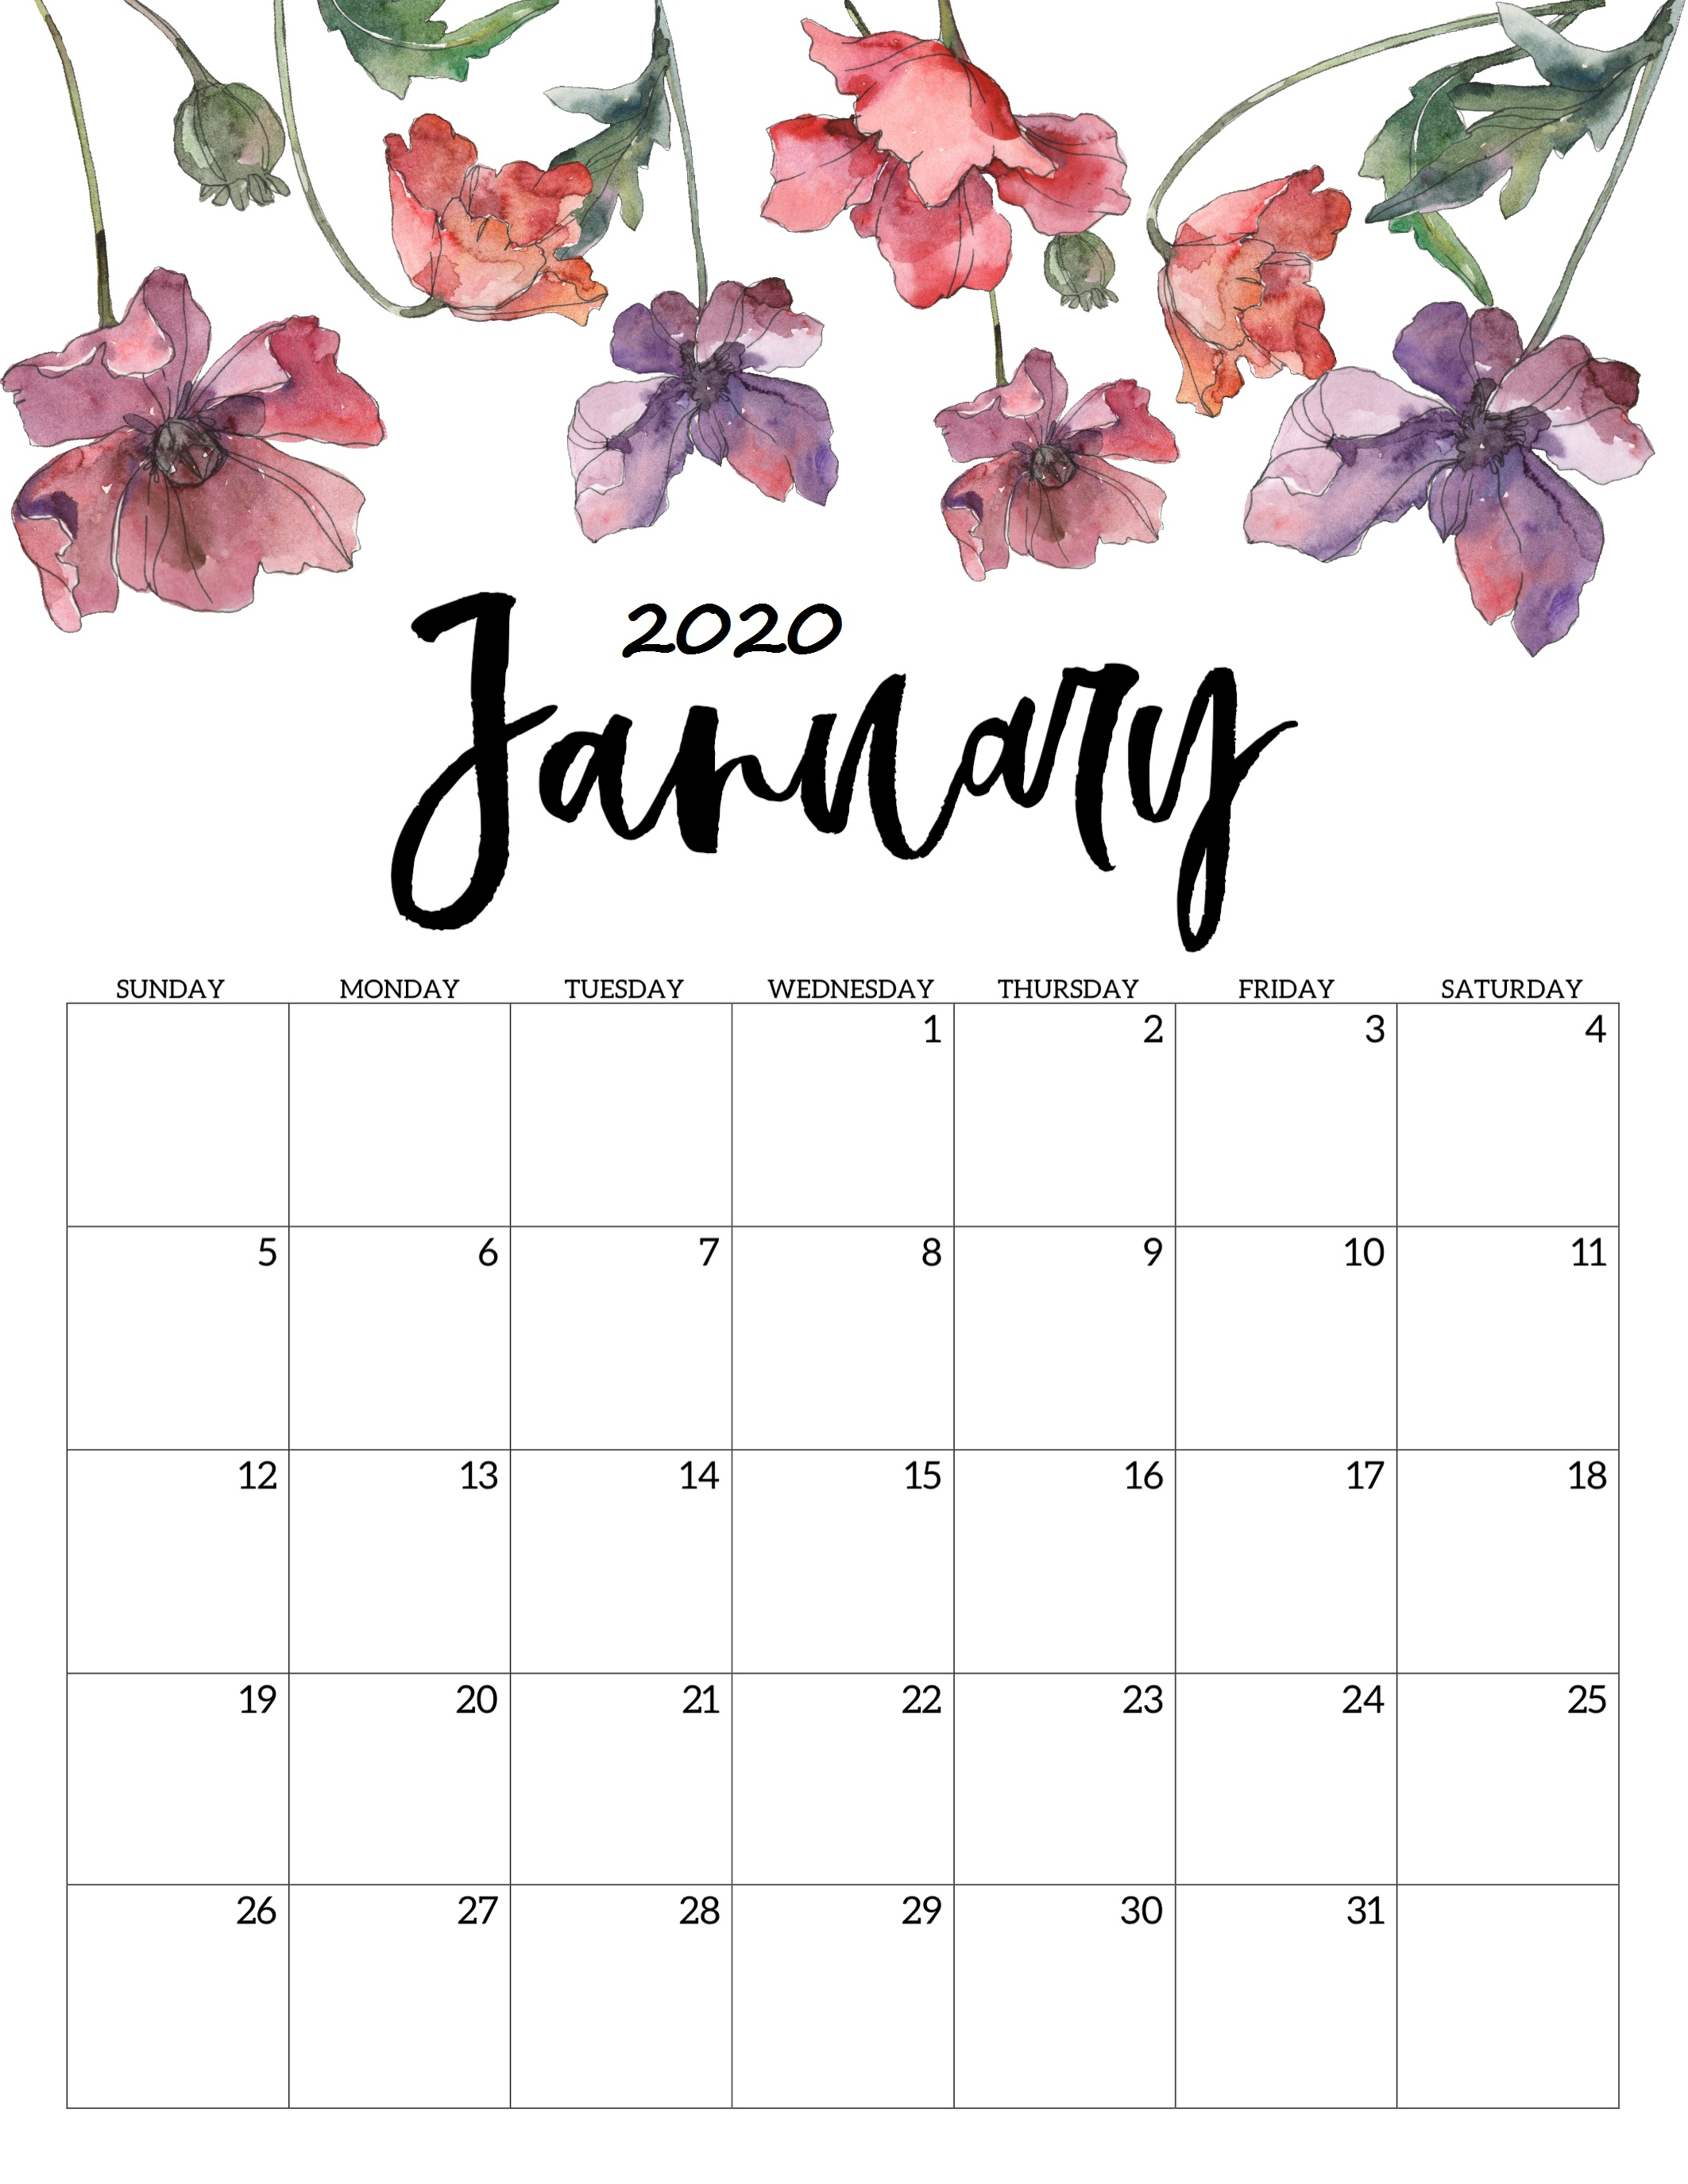 Printable Calendar For January 2020